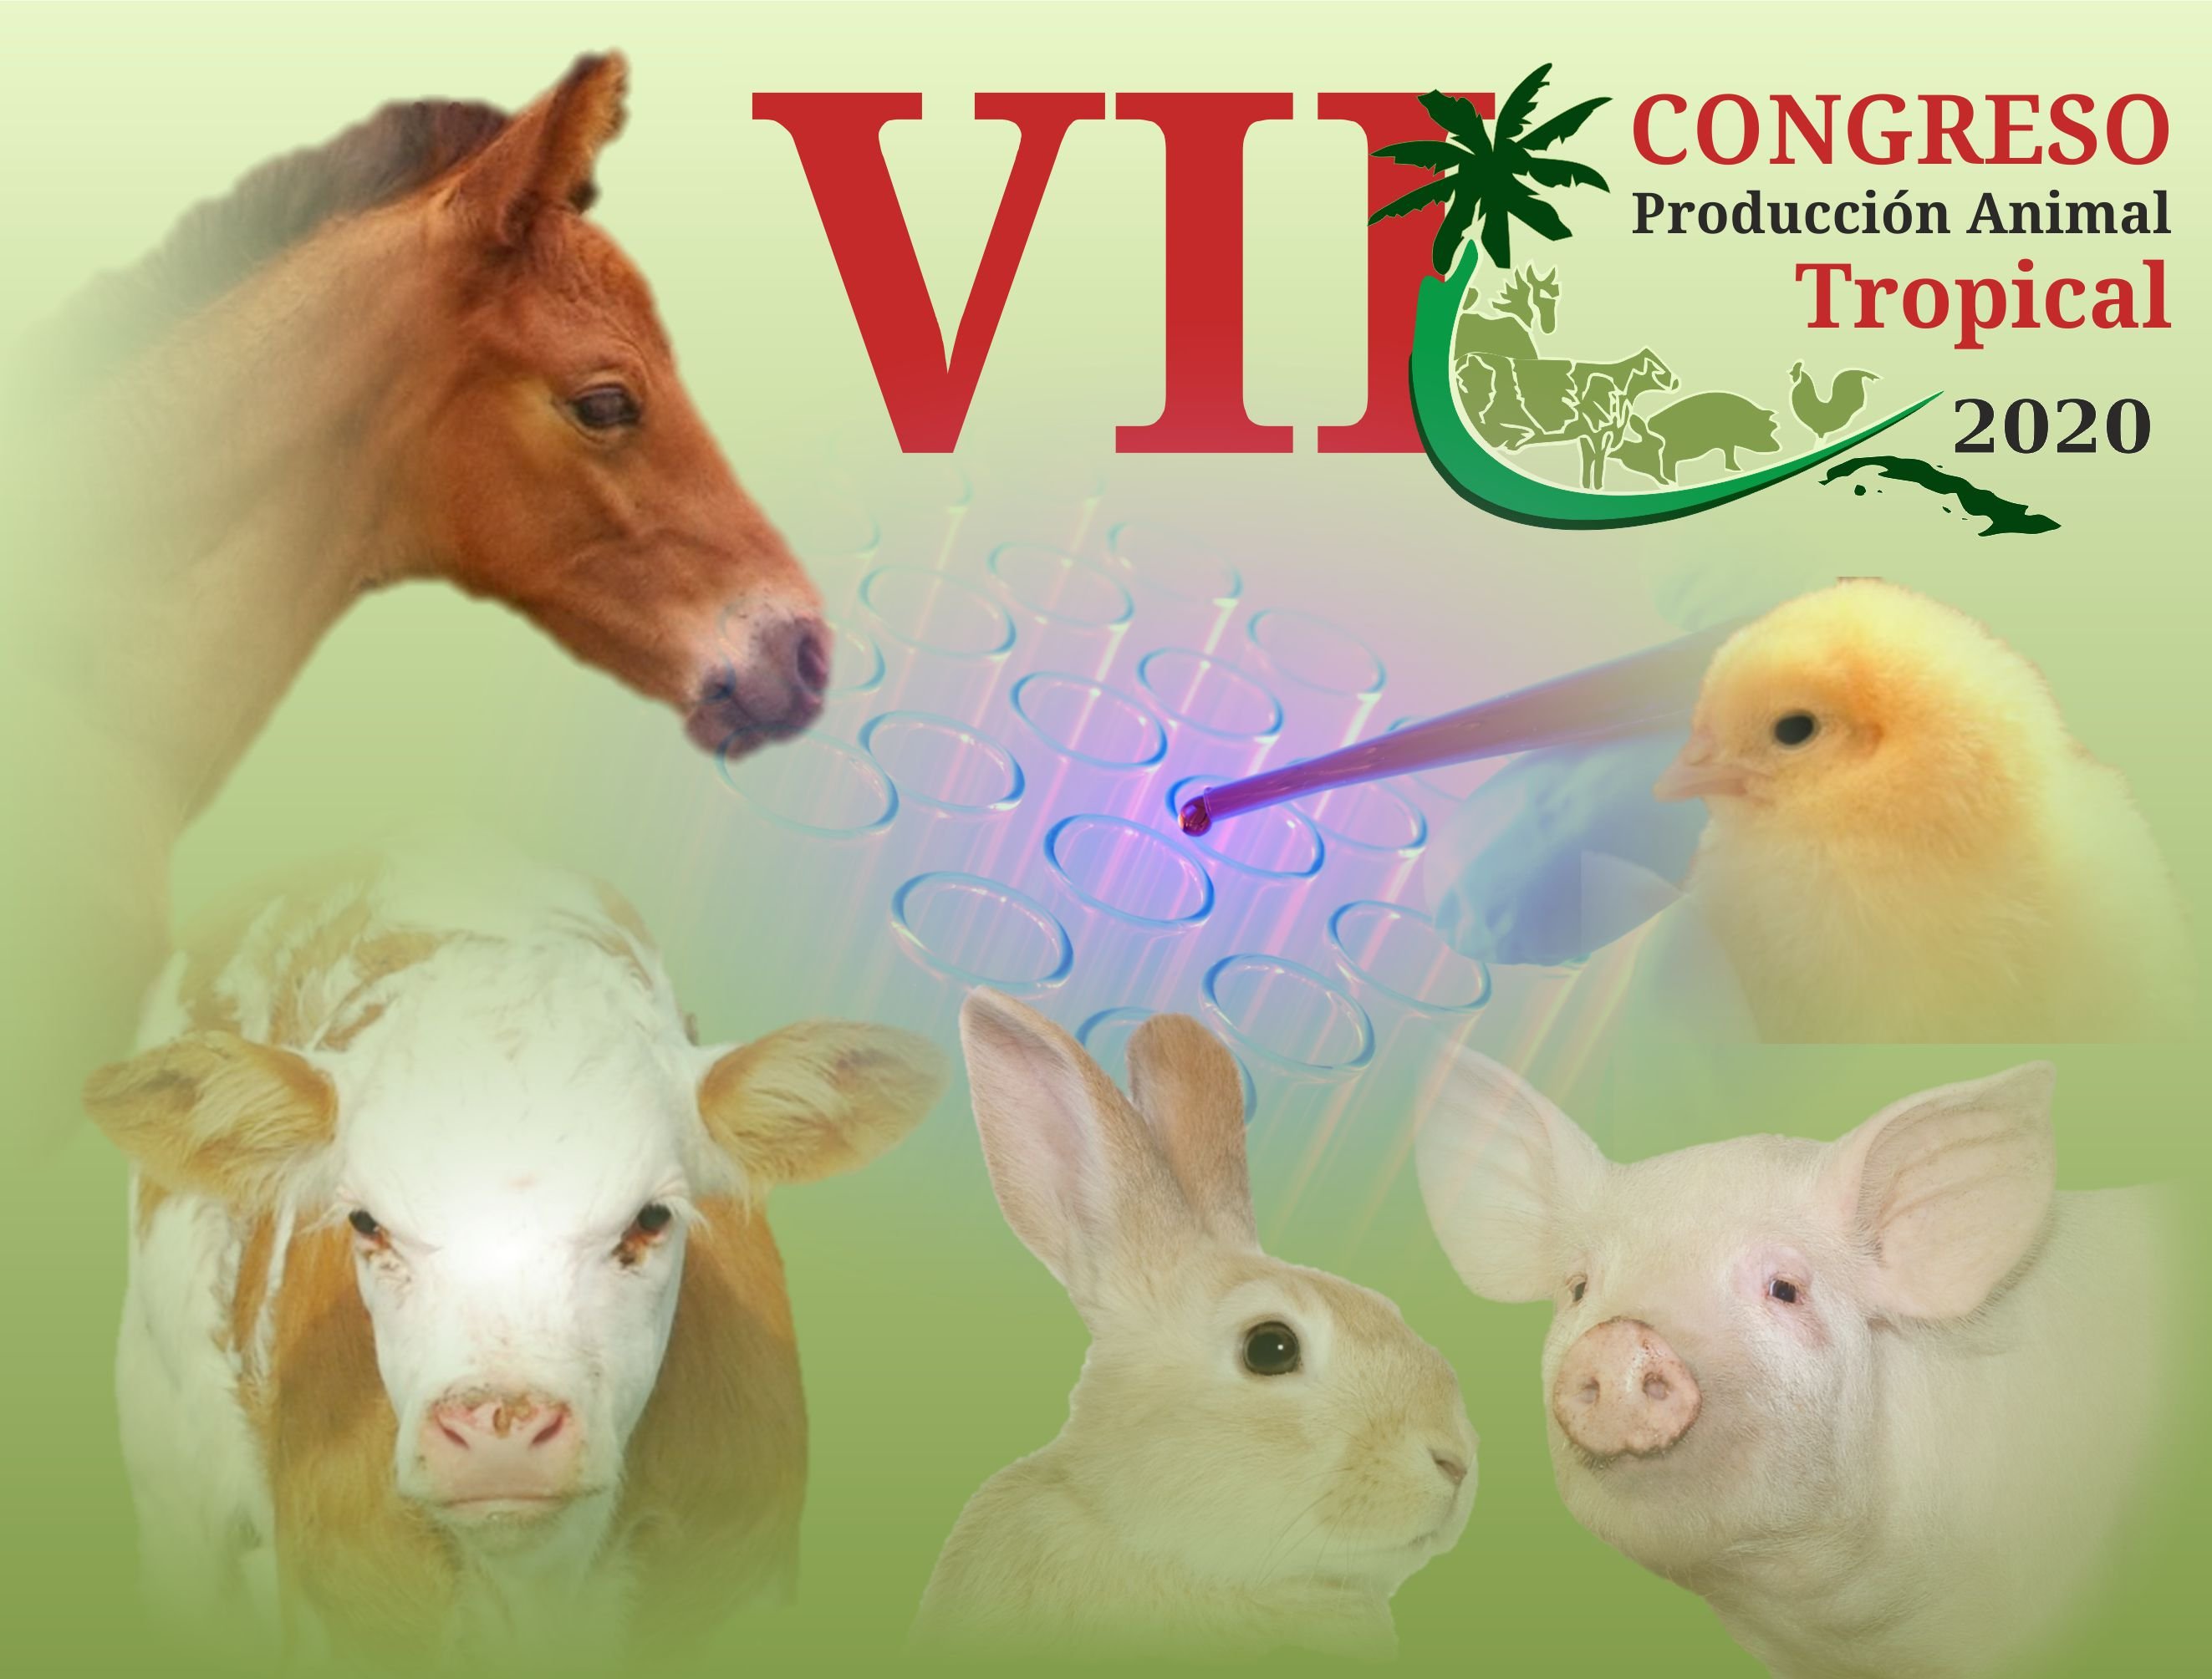 Events in Cuba - 7th International Congress of Tropical Animal Production 2021